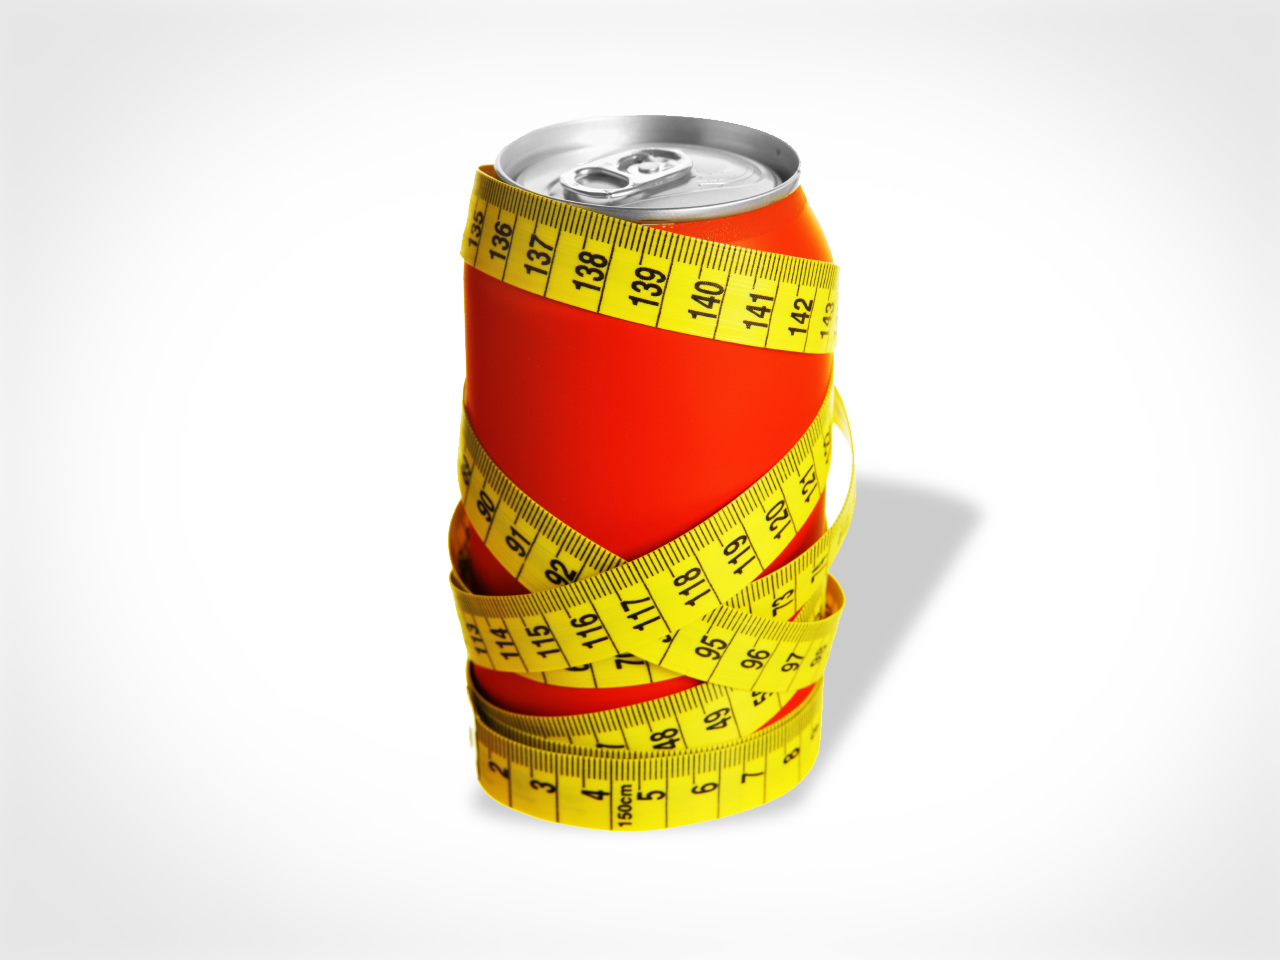 Does Diet Soda Really Cause Weight Gain? What ... - WebMD